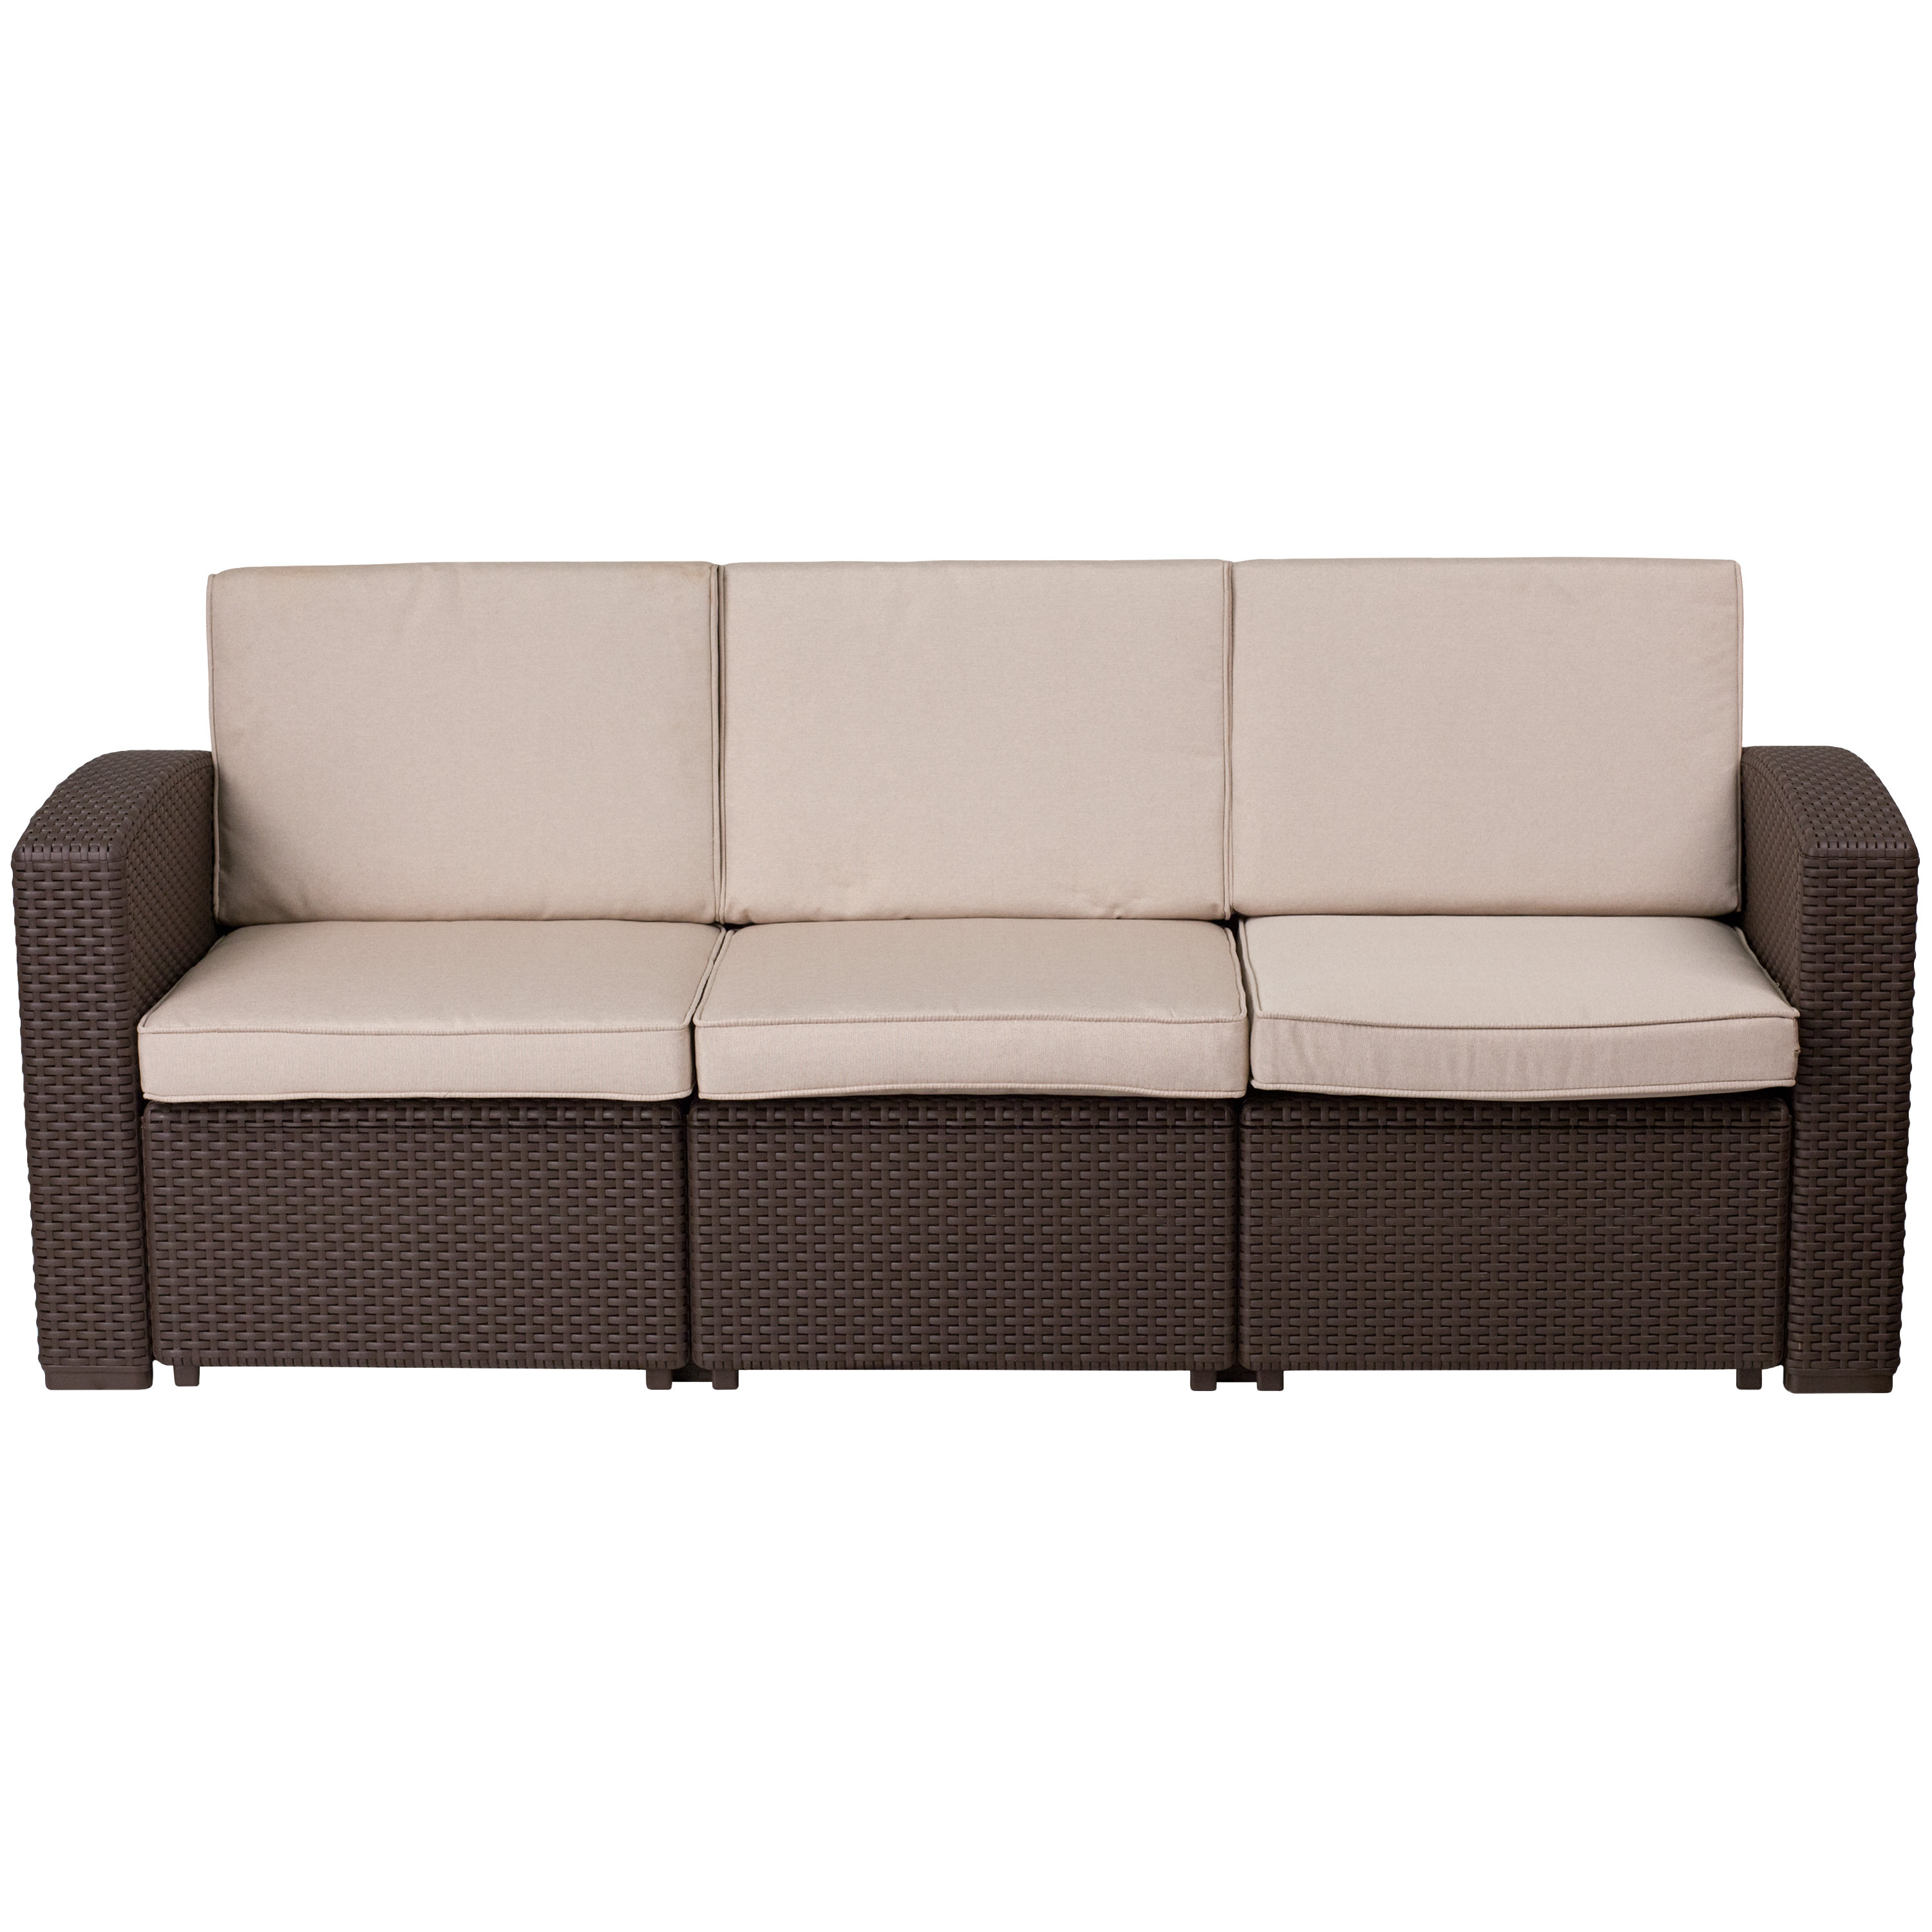 Well Liked Clifford Patio Sofa With Cushions With Regard To Silloth Patio Sofas With Cushions (View 20 of 20)